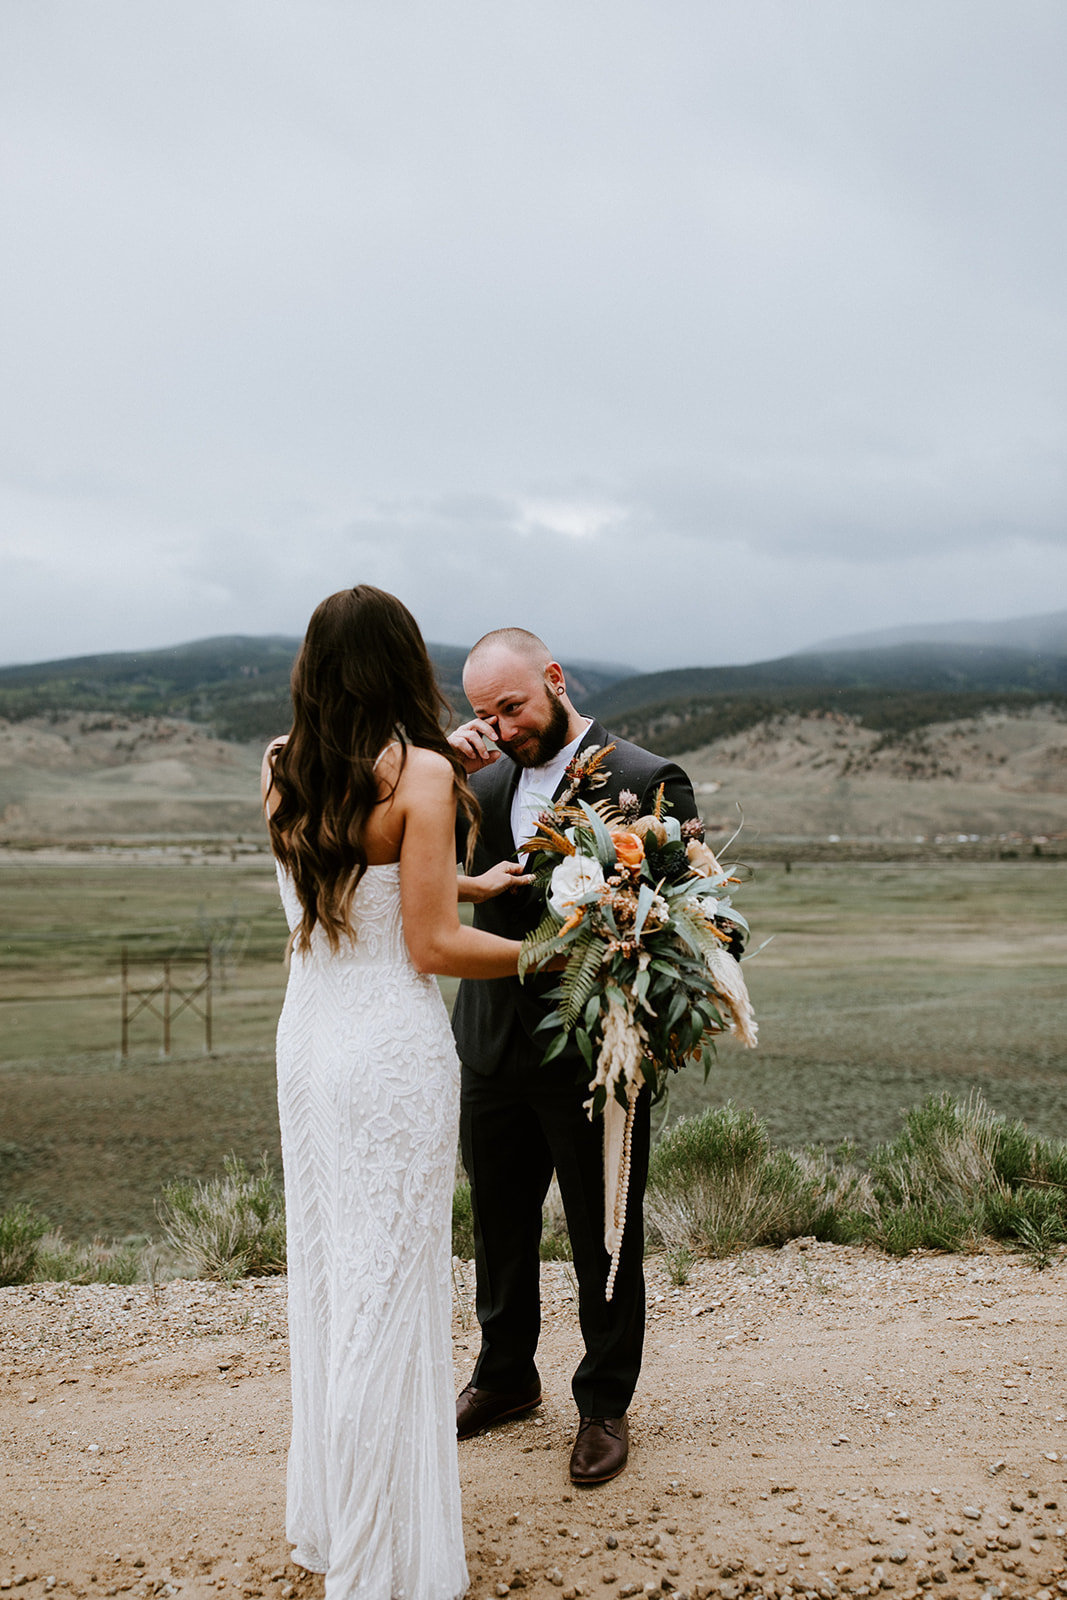 TWIN LAKES COLORADO ELOPEMENT - TWIN LAKES COLORADO THE WOLF DEN WEDDING - TWIN LAKES COLORADO WEDDING PHOTOGRAPHER - THE LOVELY LENS PHOTOGRAPHY - KATE+TREY-347_websize